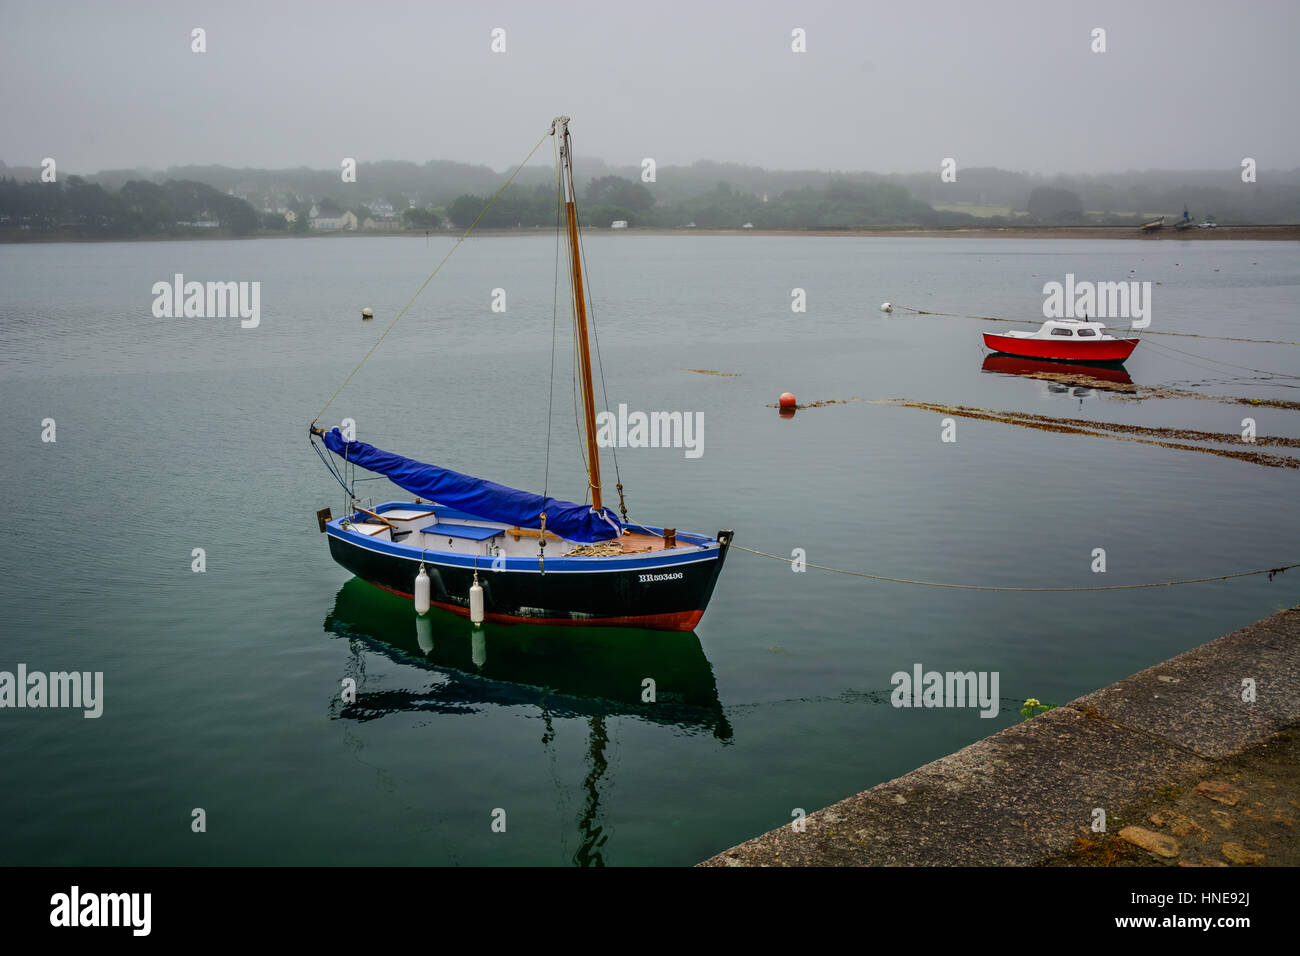 L e Fret, small in Brittany with ferry boat to Brest, Finistere, France Stock Photo